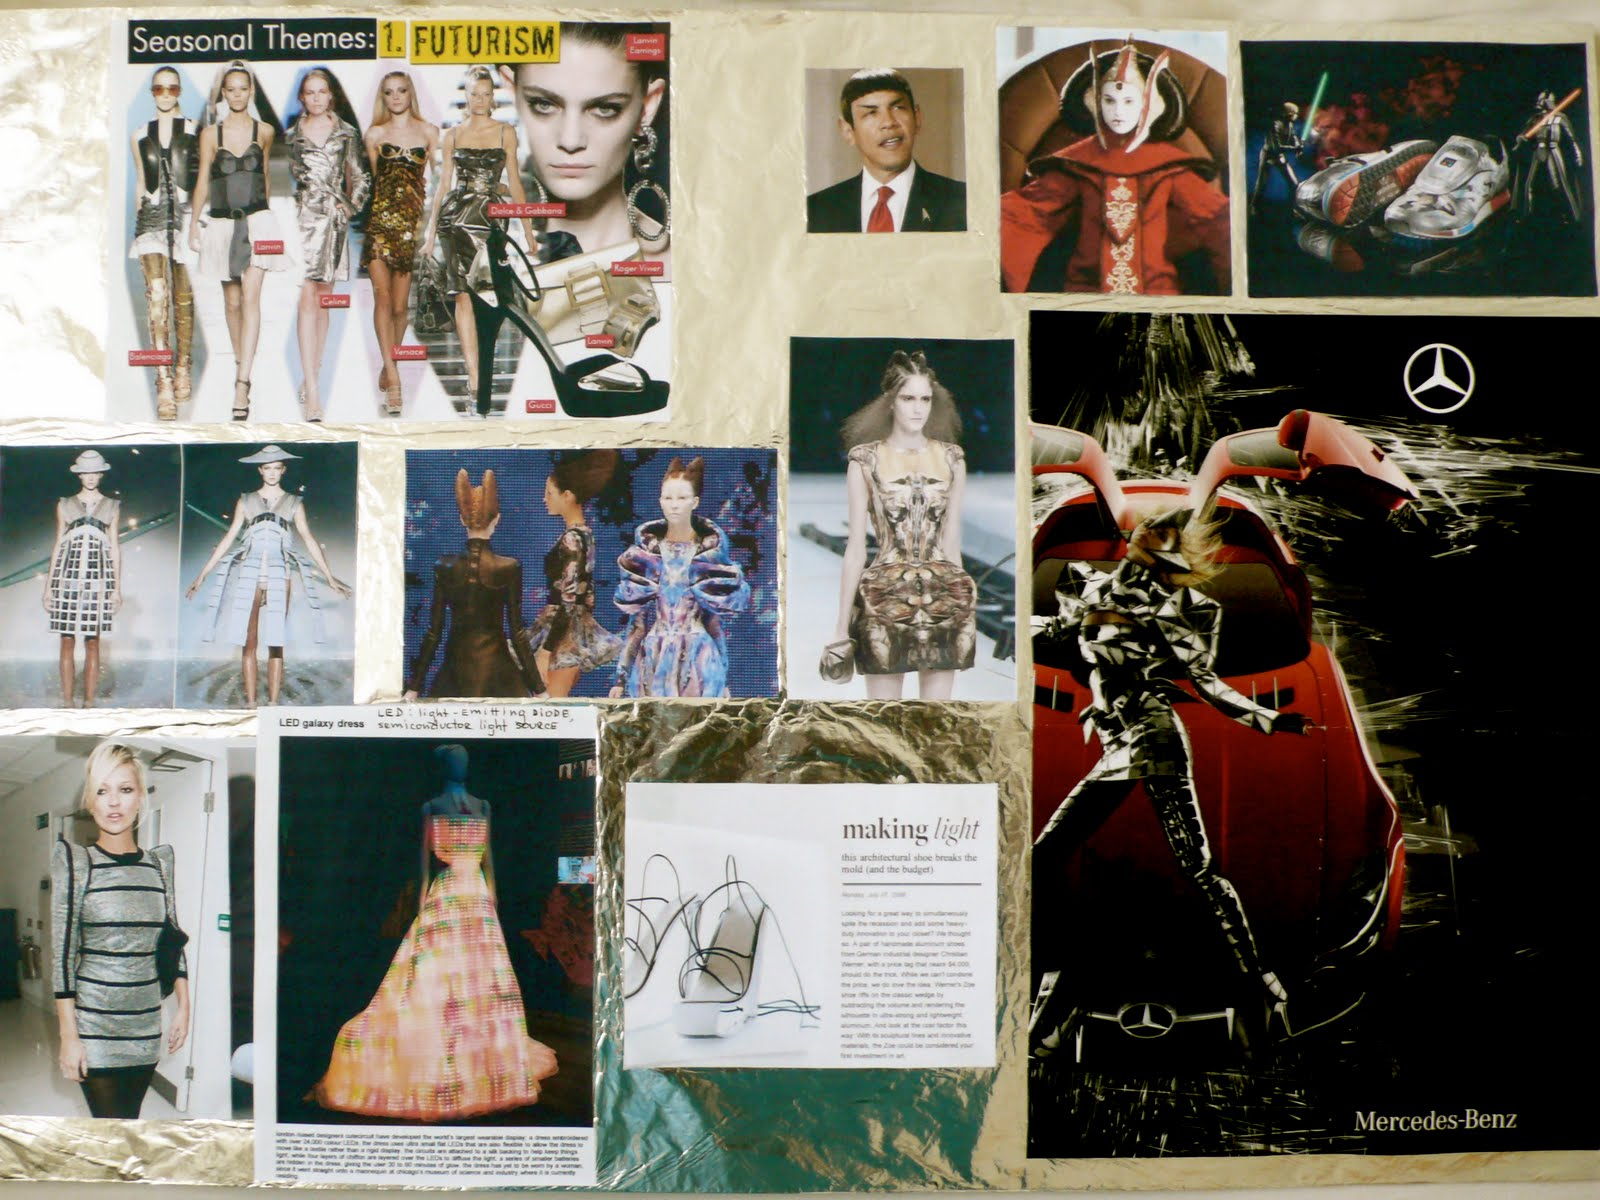 theory ba textile object analysis and essay ideas futurism in  object analysis and essay ideas futurism in fashion and textiles